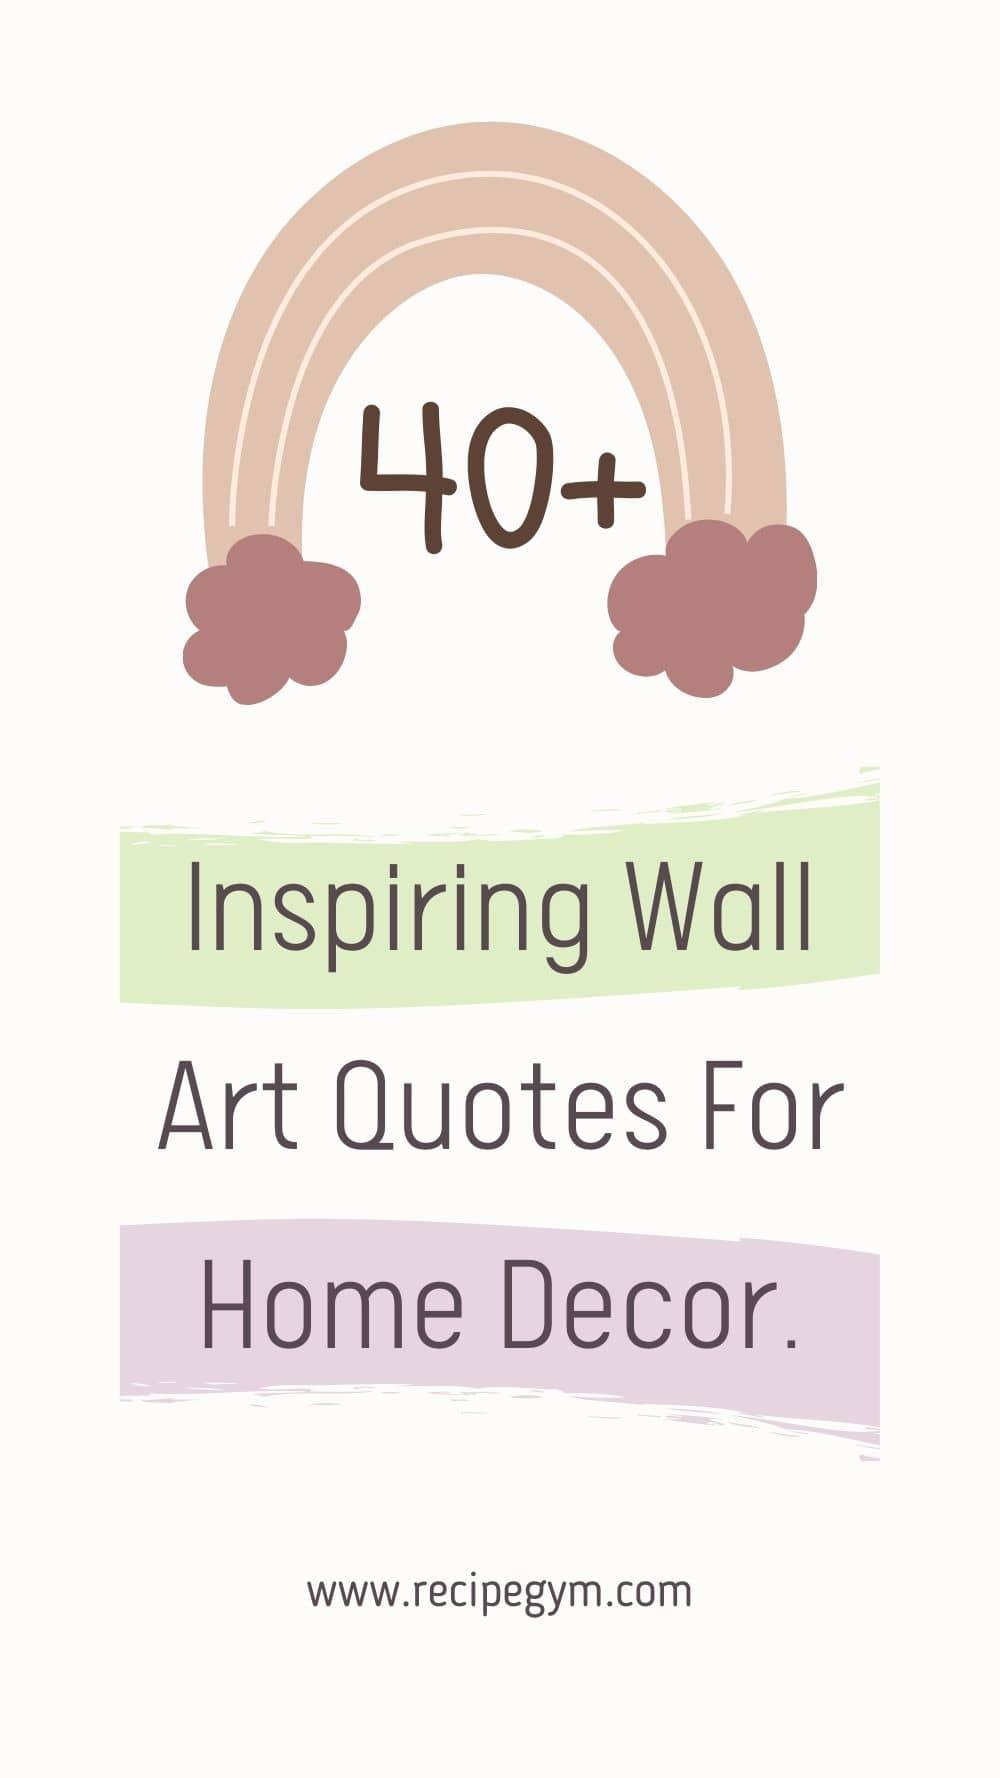 Inspiring wall art quotes for home decor